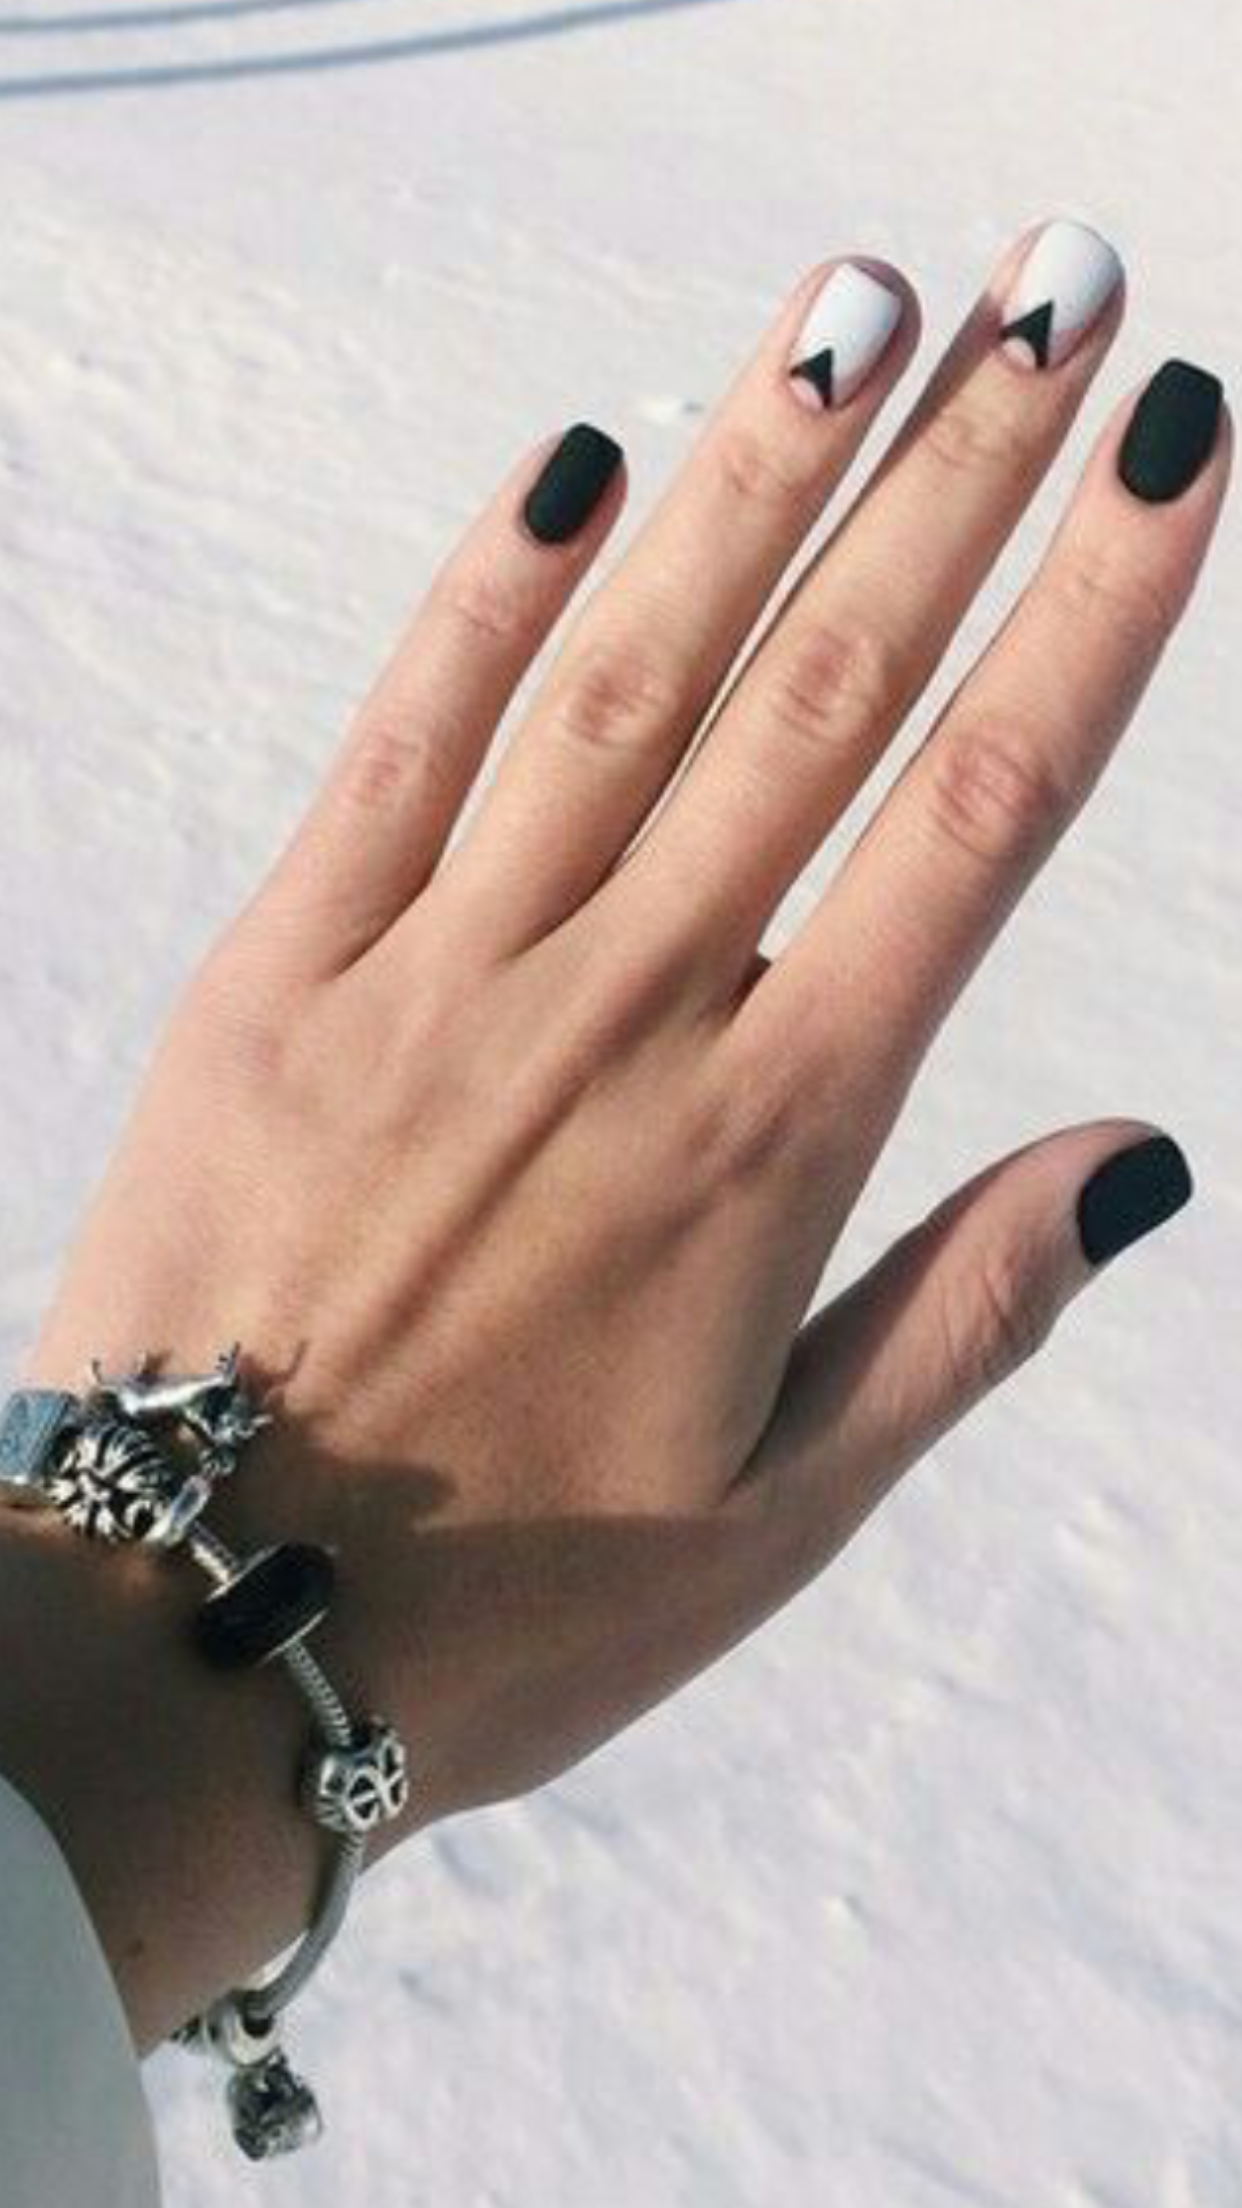 Pin by Christy Ballance on Nailed it • in 2019 Nail